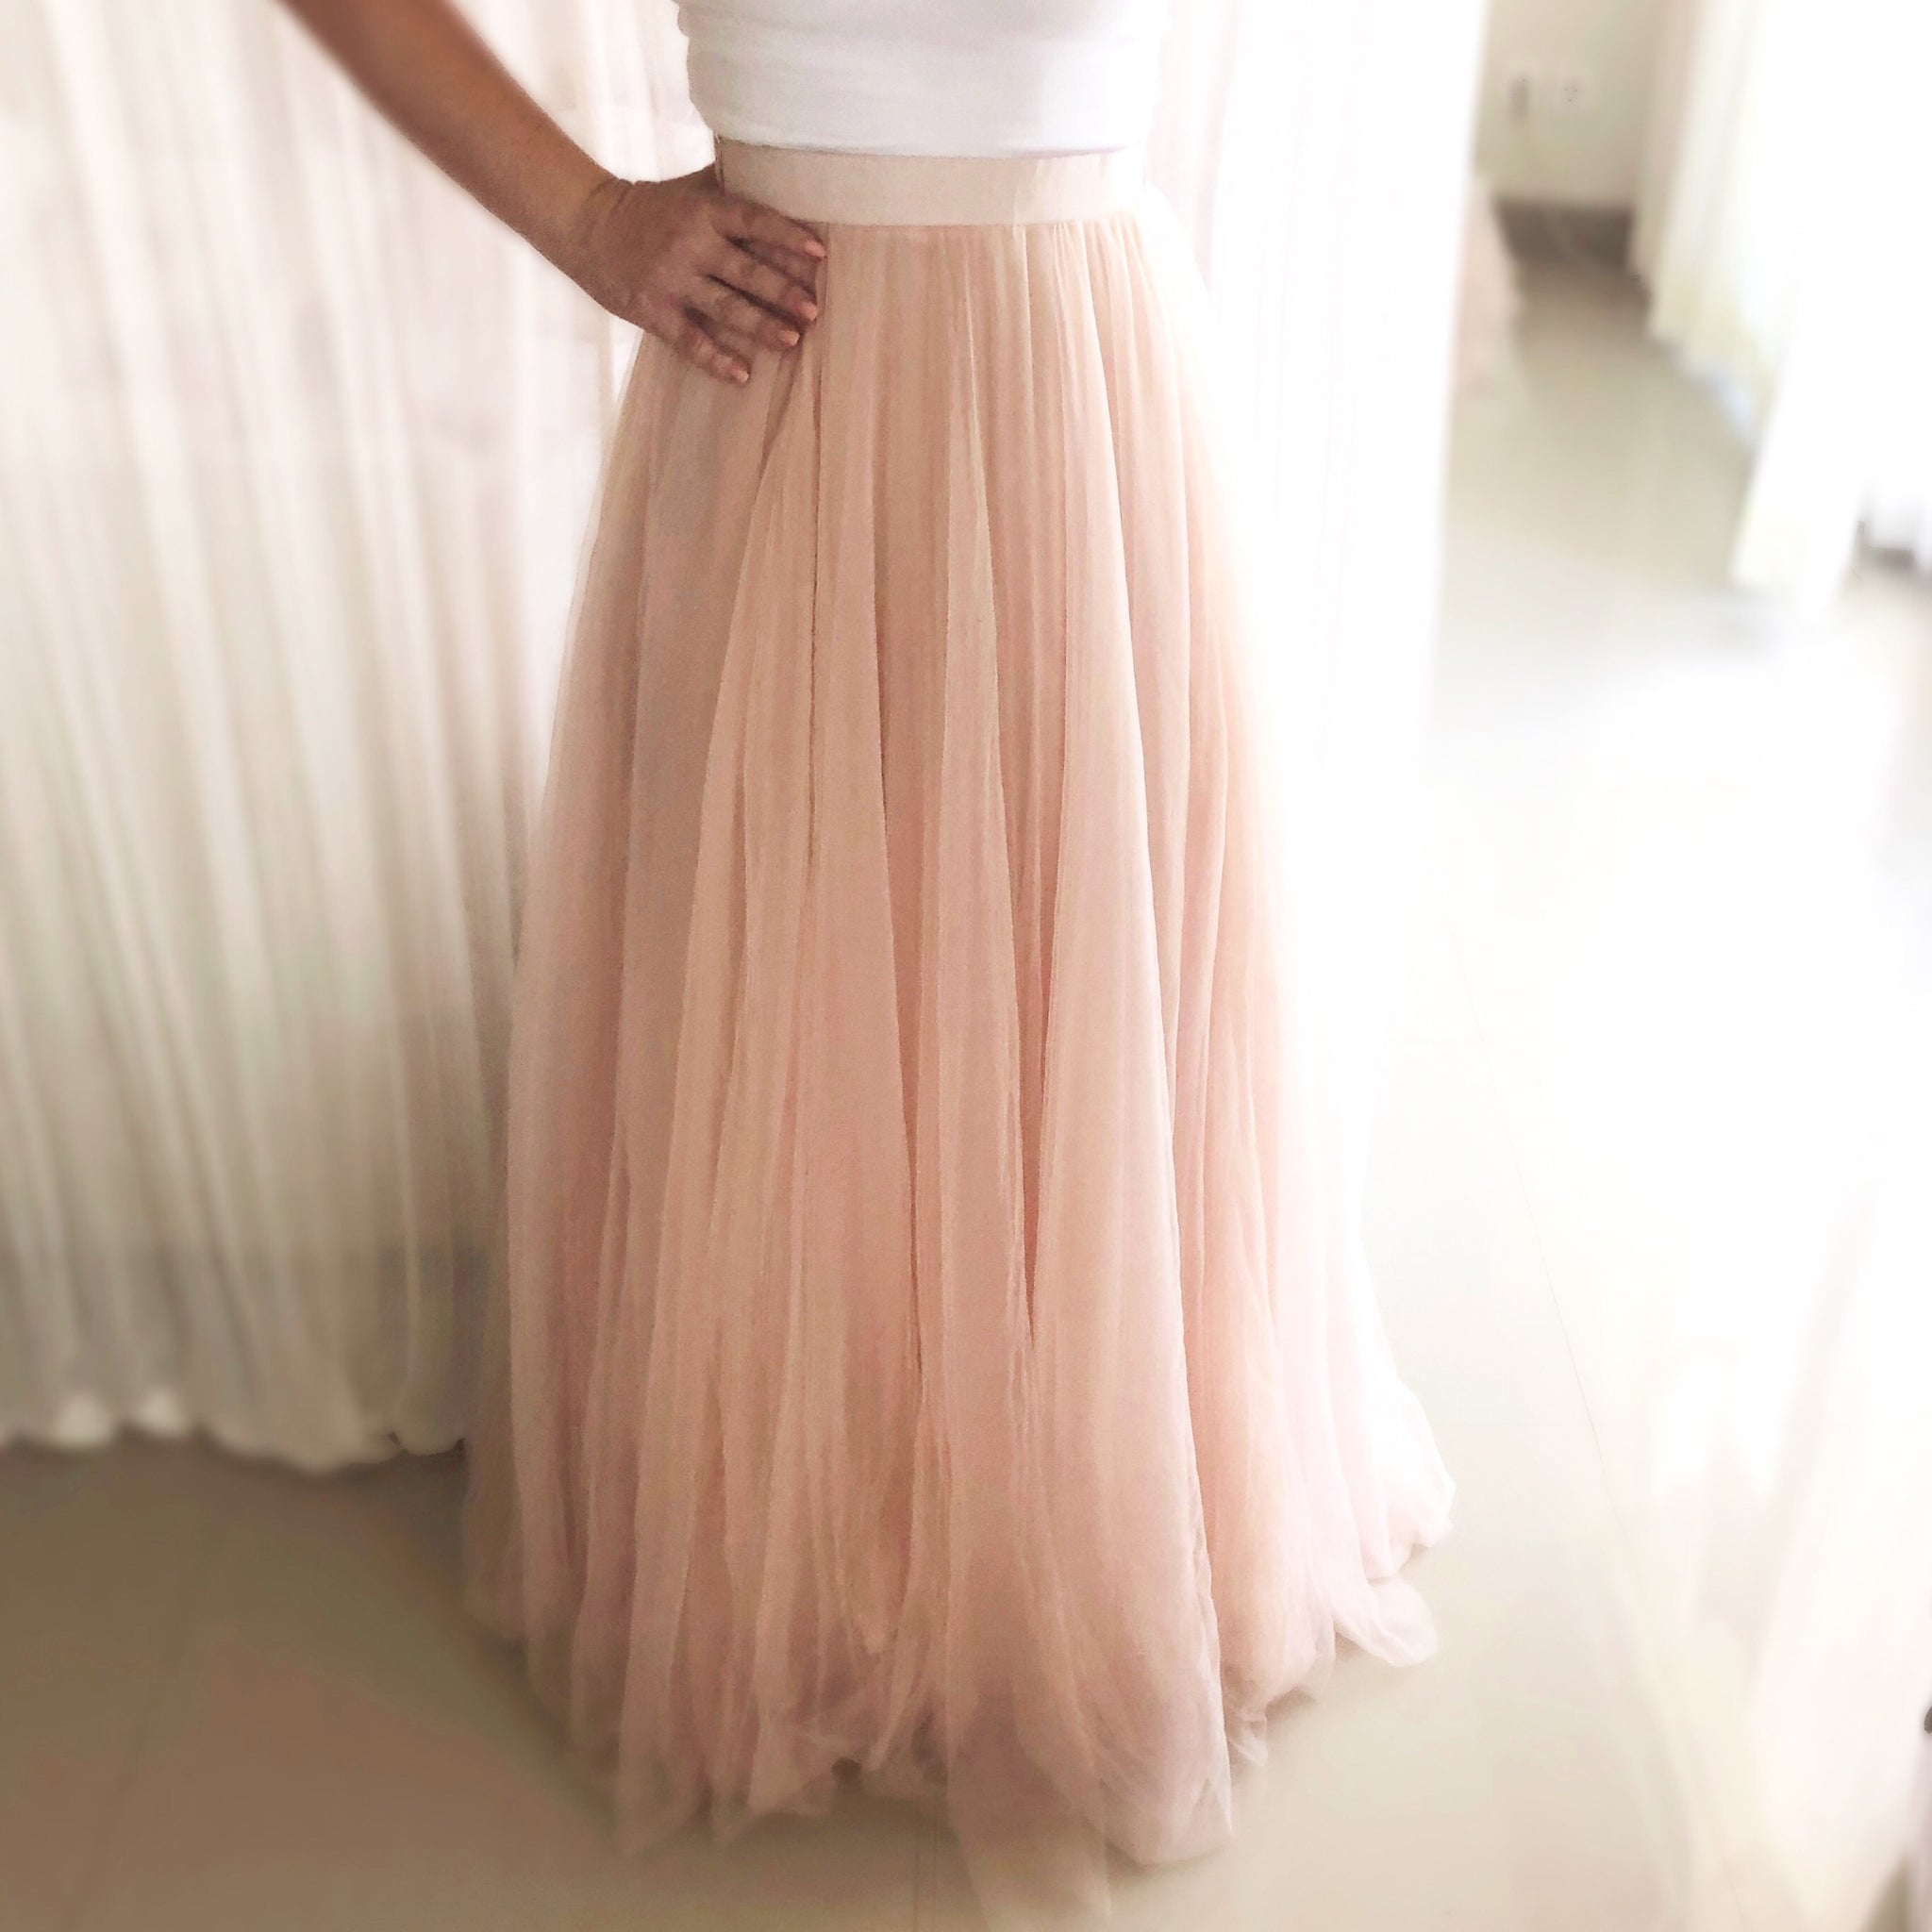 Haute Tulle - Long Nude Pink Adults Tulle Skirt